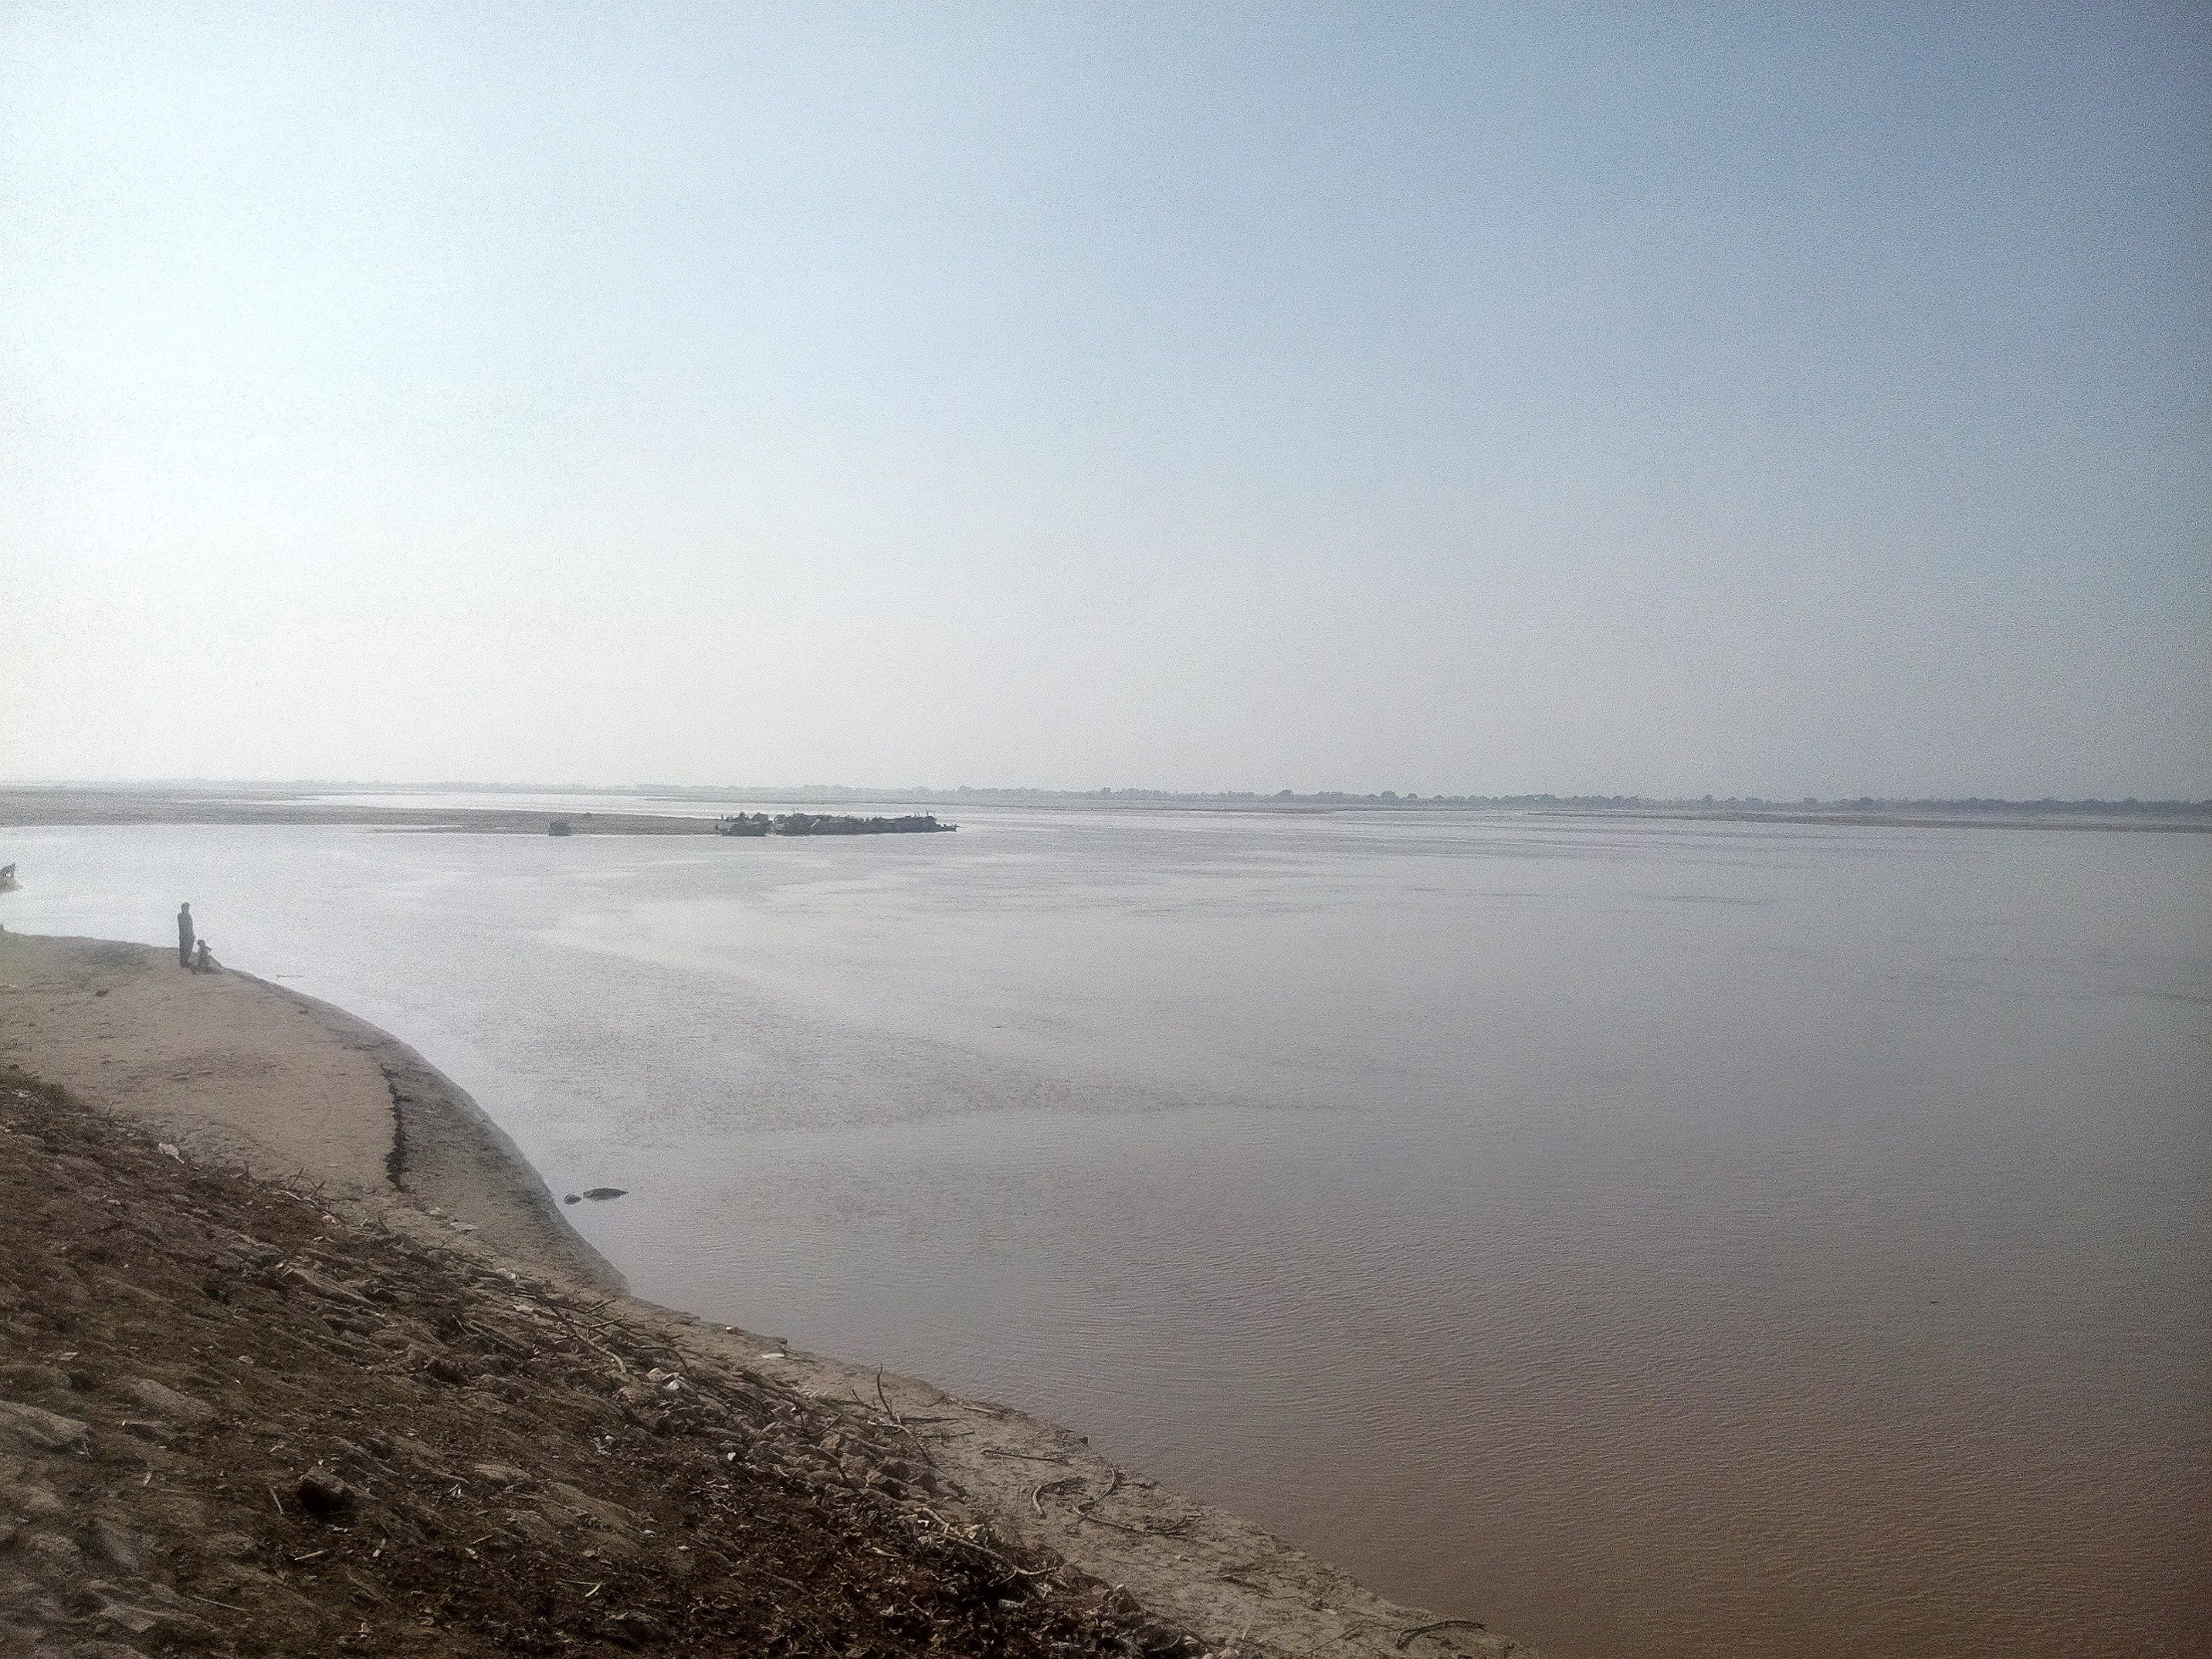 Head Panjnad: River Chenab